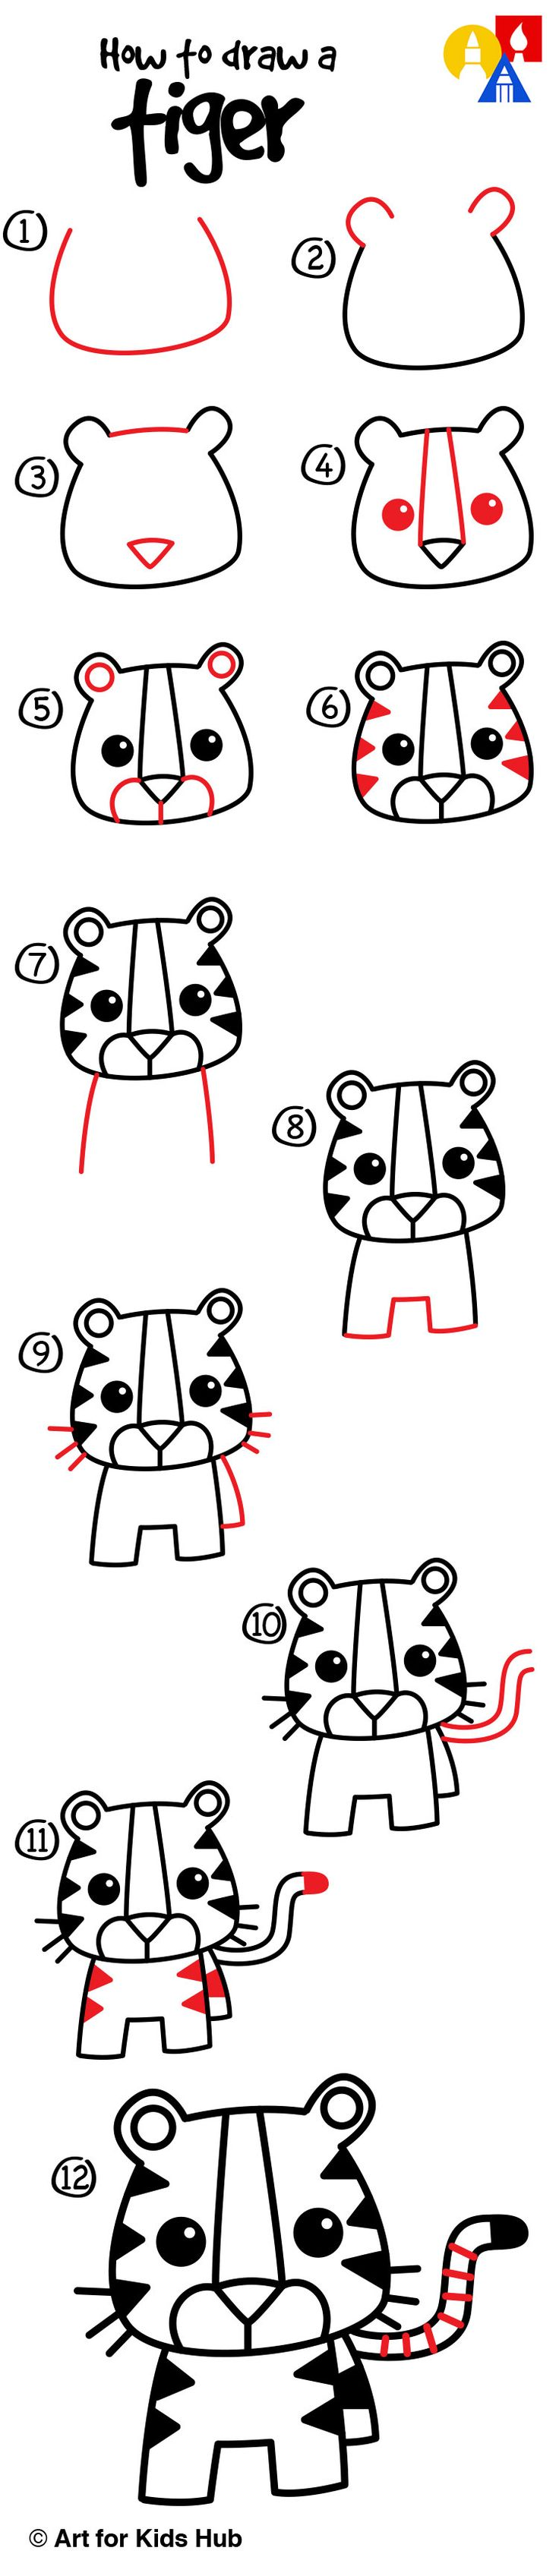 Uncategorized How To Draw Things For Kids best 25 how to draw things ideas on pinterest stuff a cartoon tiger art for kids hub